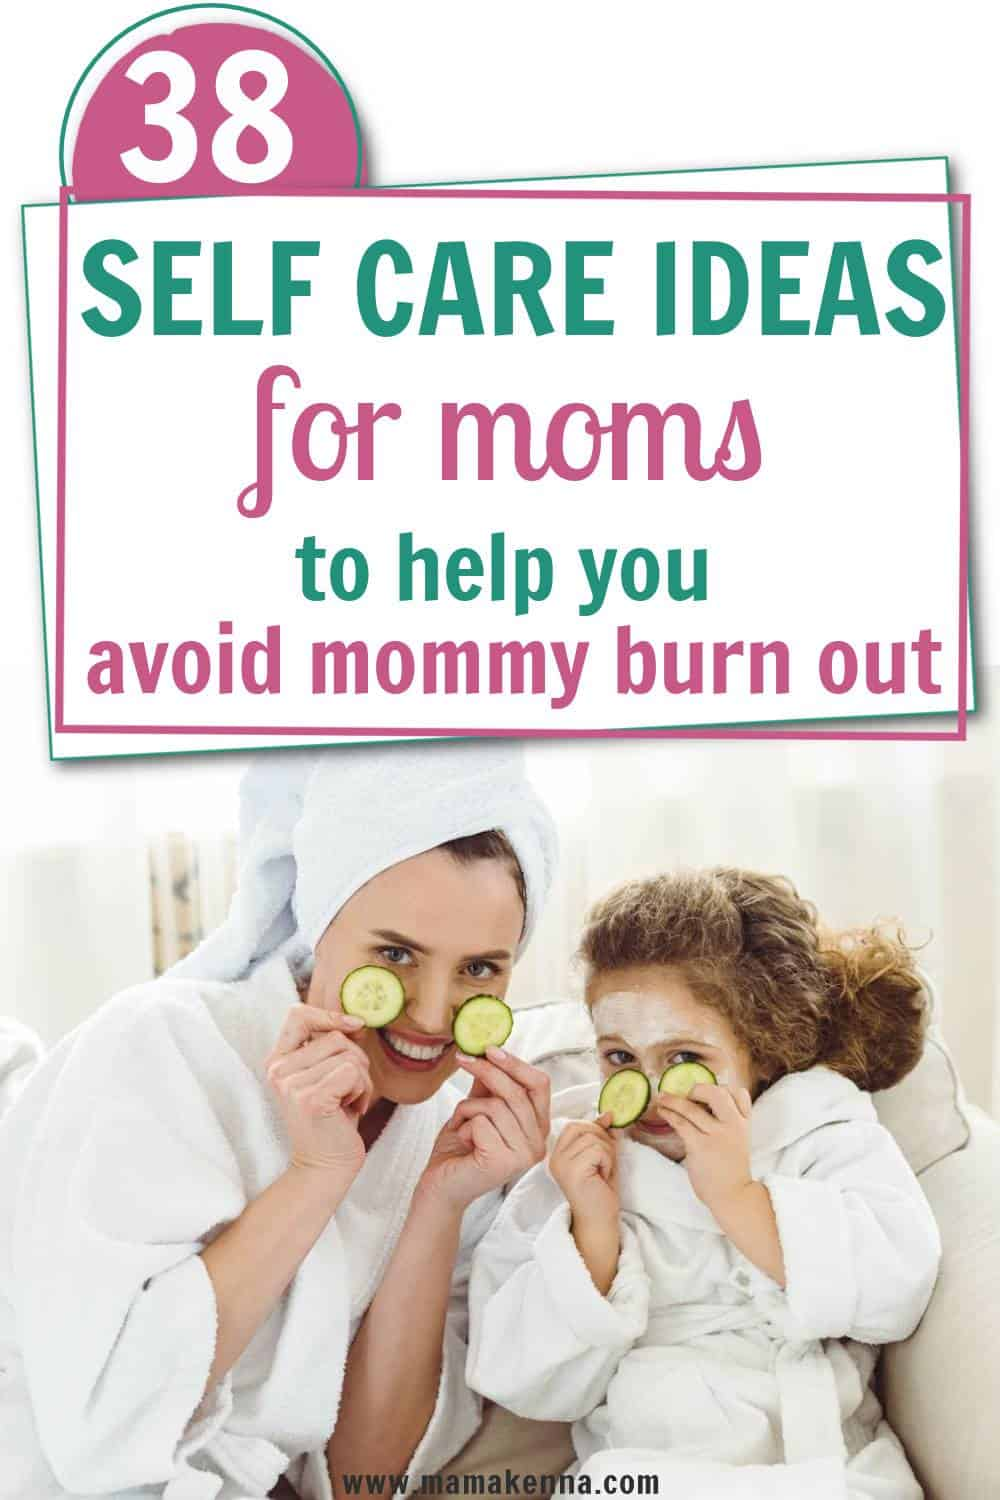 Self care tips for moms to help avoid mom burn out